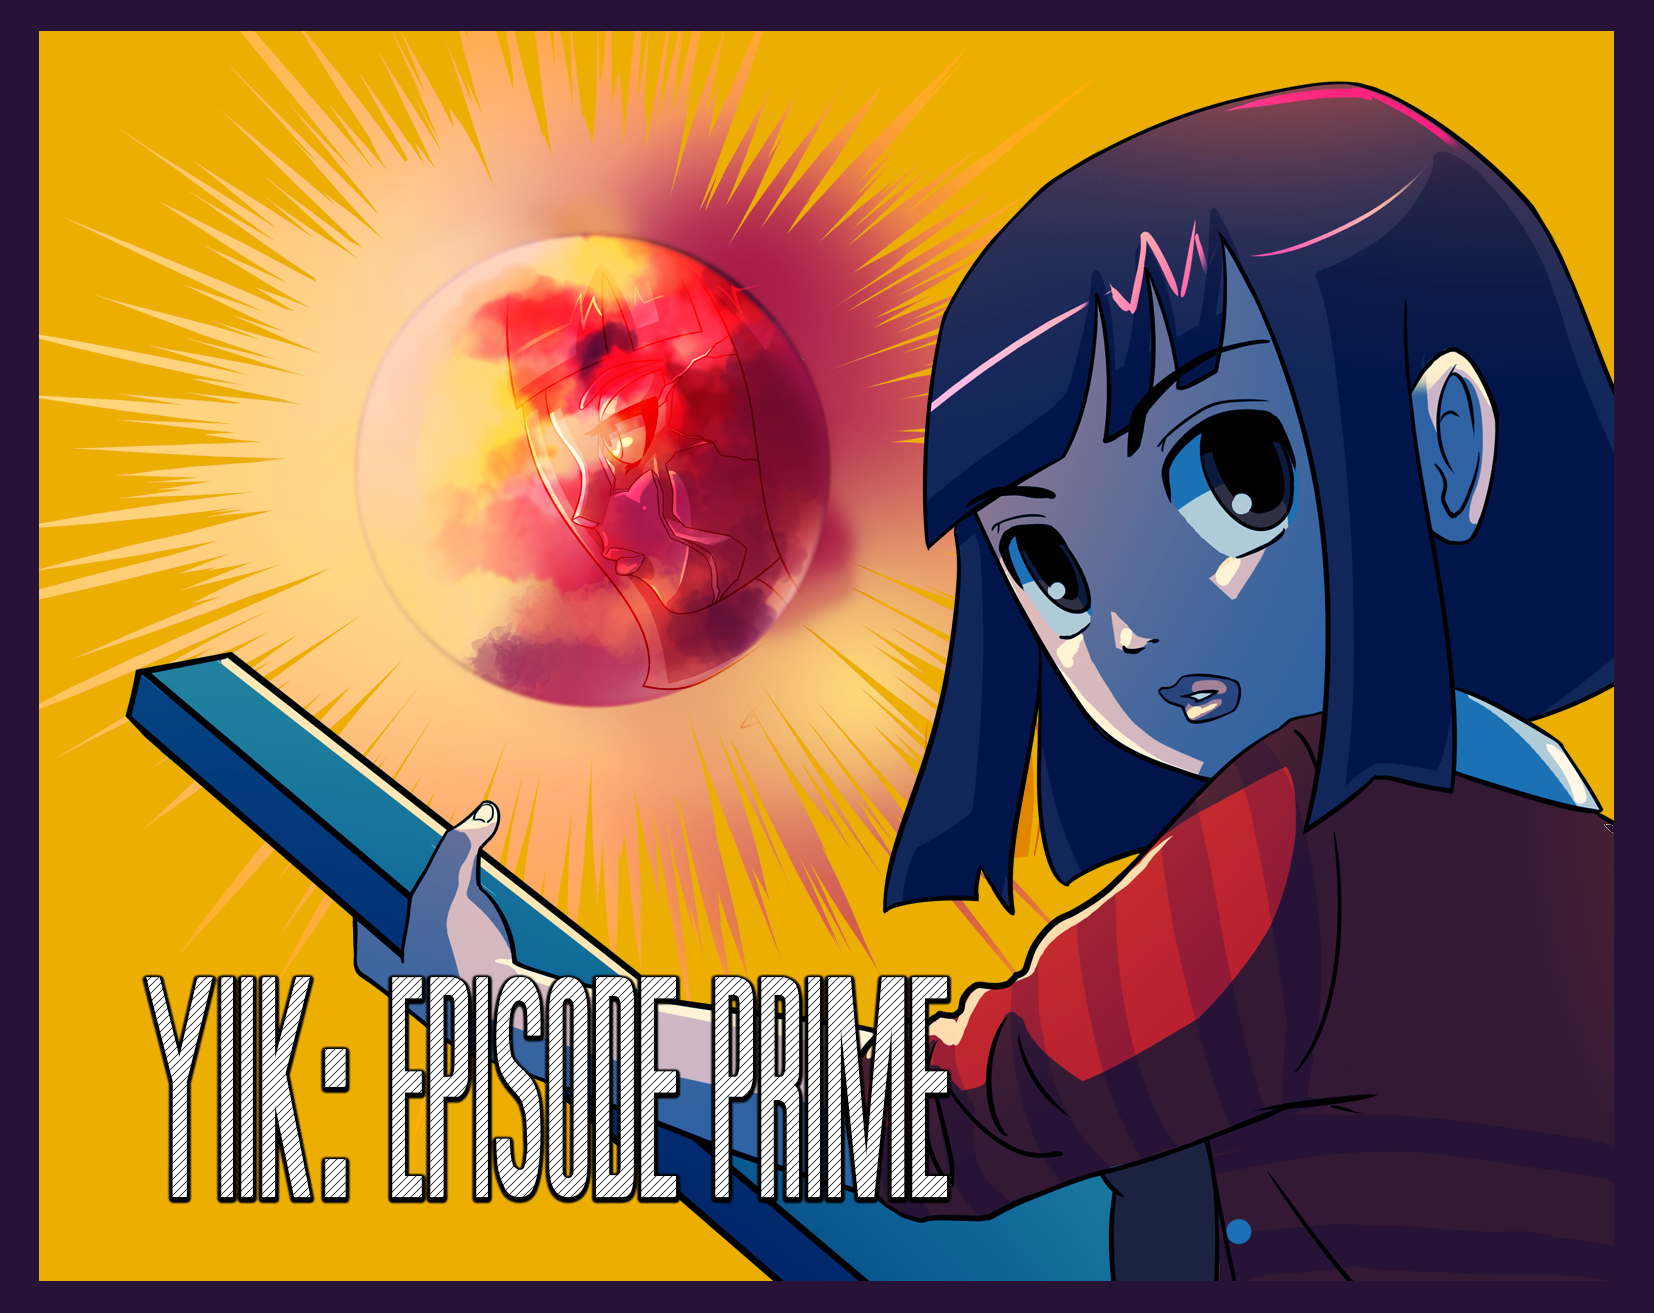 "YIIK: Episode Prime ""The MixTape Phantom and the Haunting of the Southern Cave."""